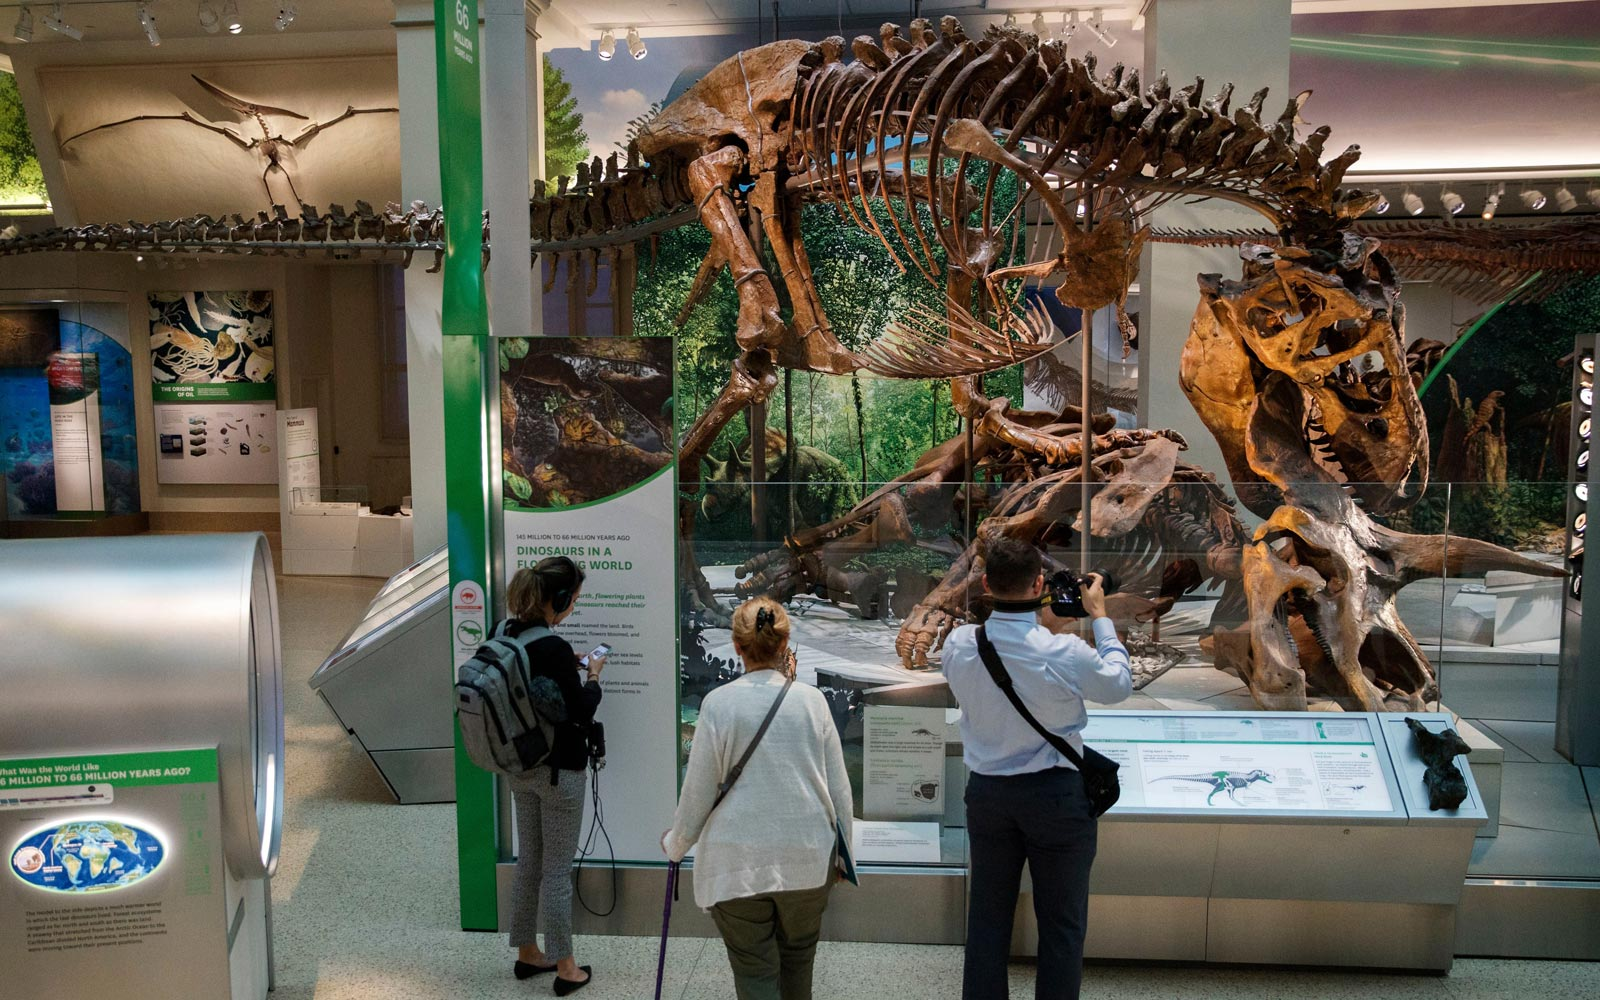 The Smithsonian Just Added a Real Tyrannosaurus Rex Skeleton at the Natural History Museum